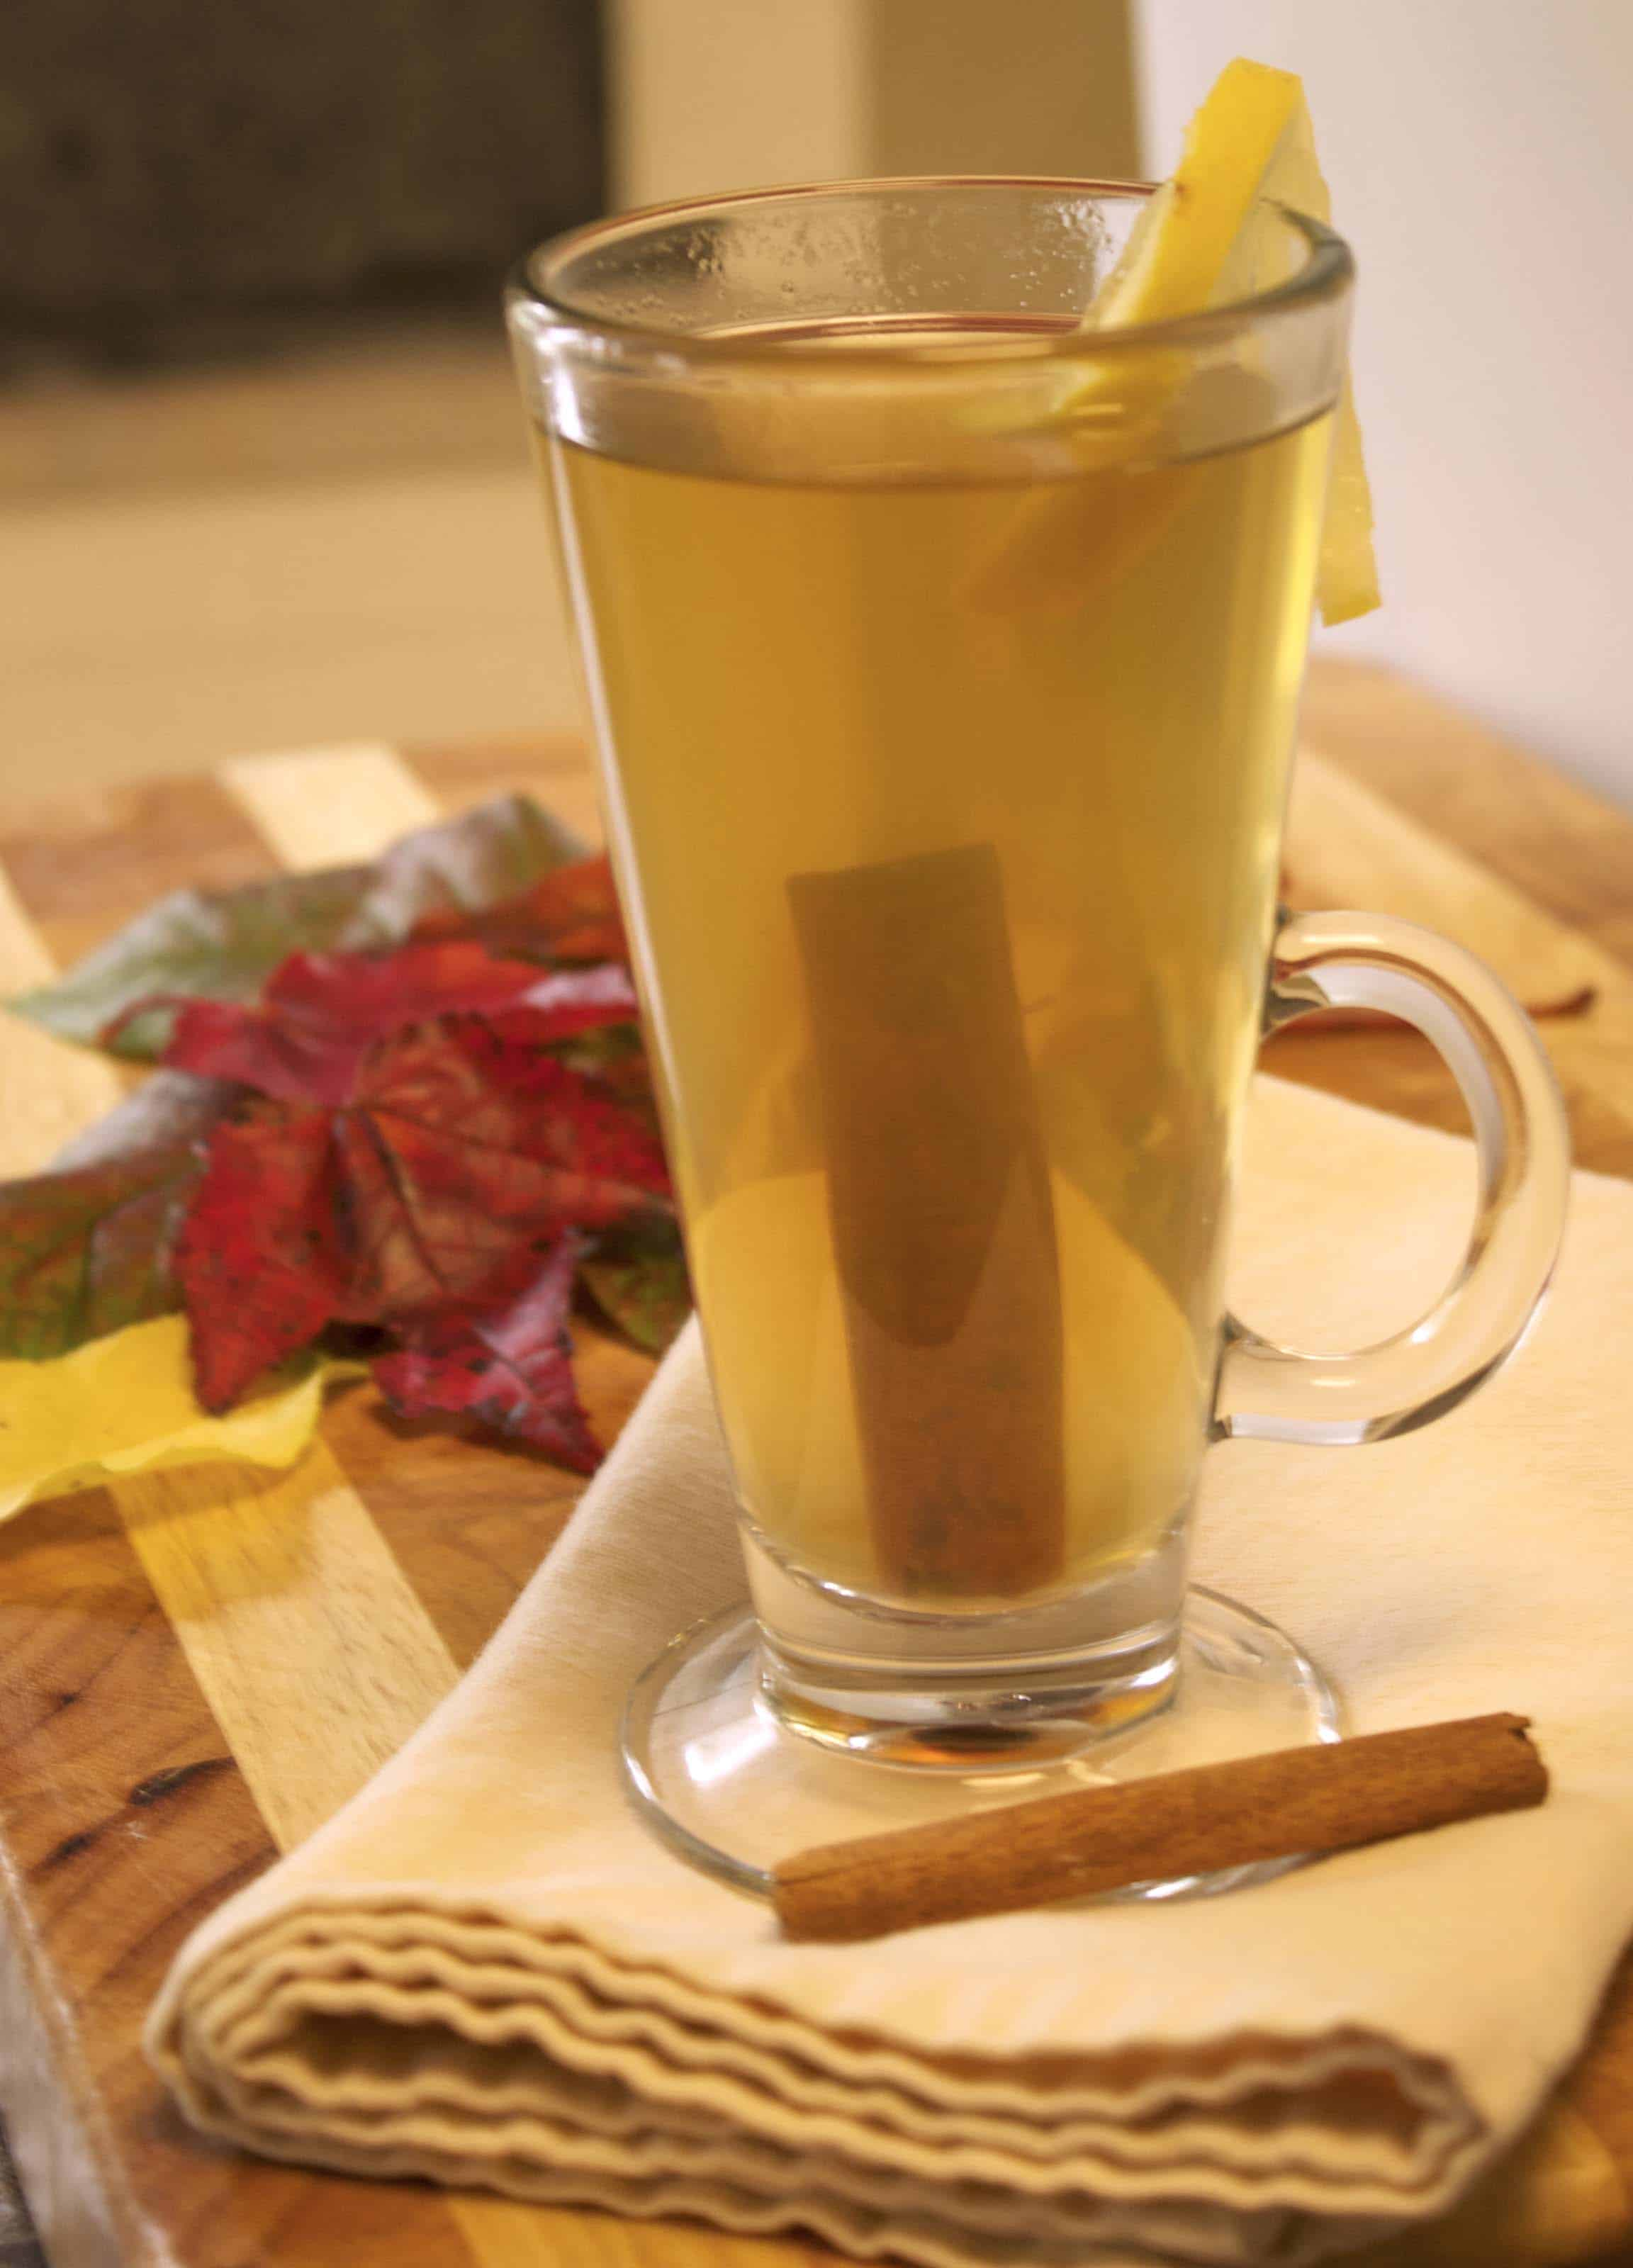 So instead of wine for my birthday, I made a Cognac Hot Toddy in honor ...